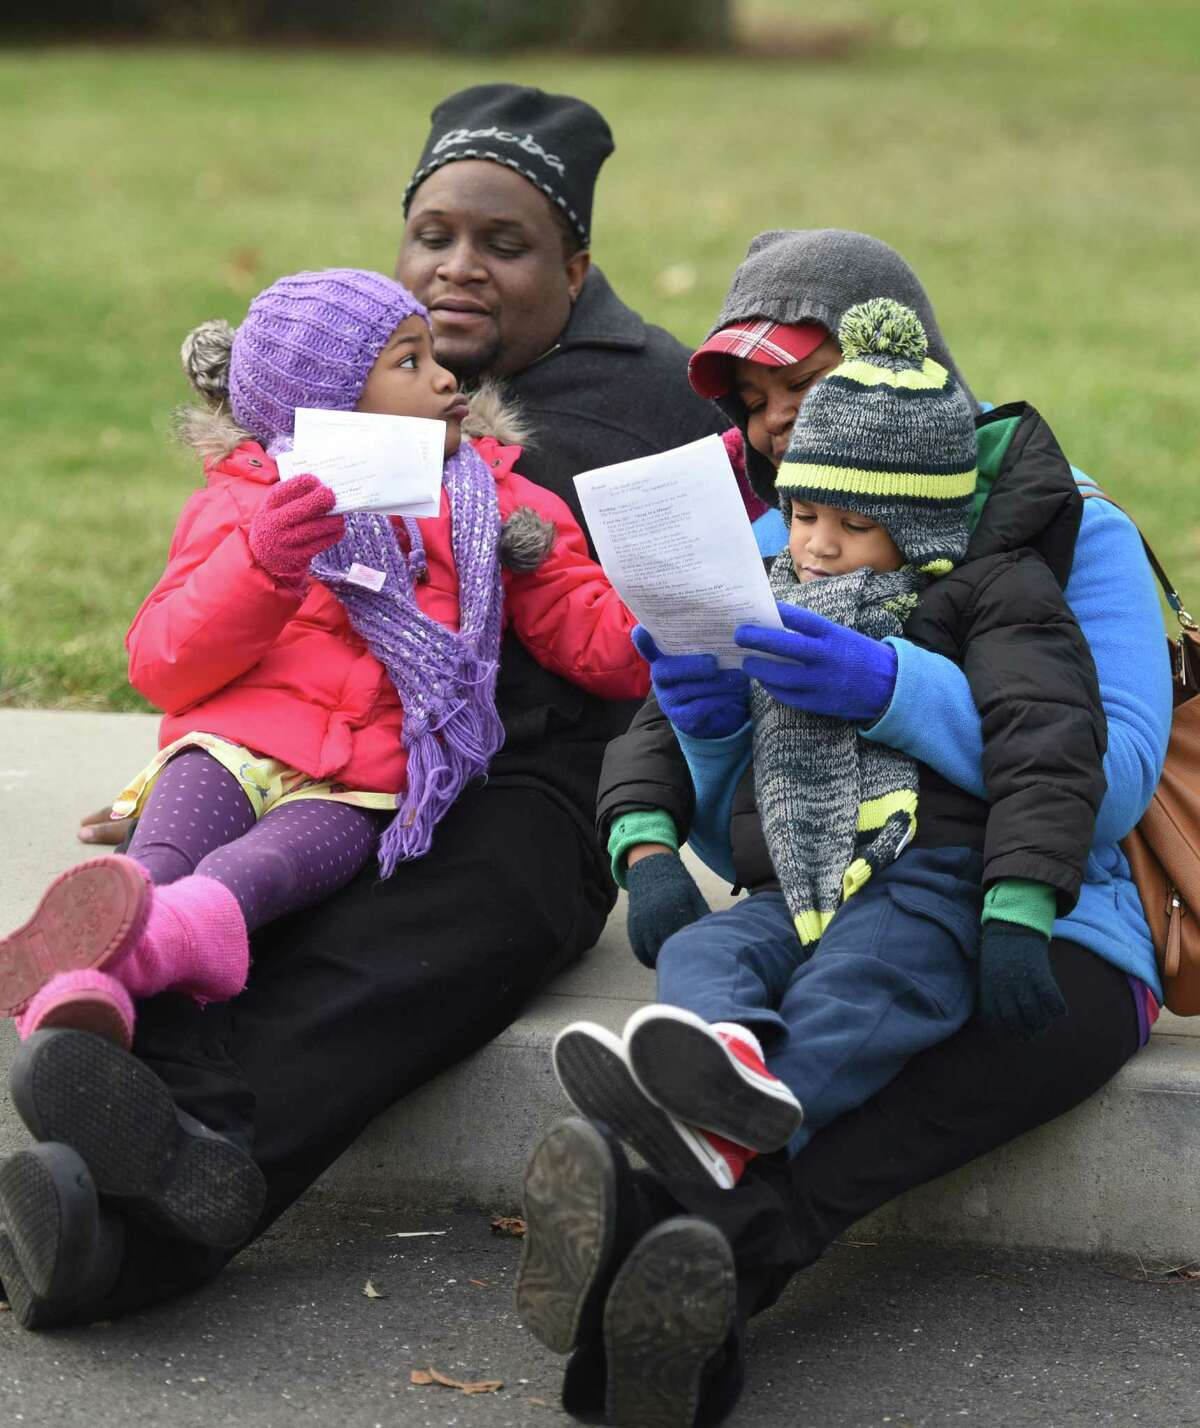 Clive and Kharline Haynes, of Stamford, watch the live nativity at First United Methodist Church in Stamford, Conn. with their kids Rylie, 6, and Dash, 4, Sunday, Dec. 14, 2014. Children dressed up and portrayed Mary, Joesph and others from the Bible, with live animals, as a large group watched and sang Christmas carols.